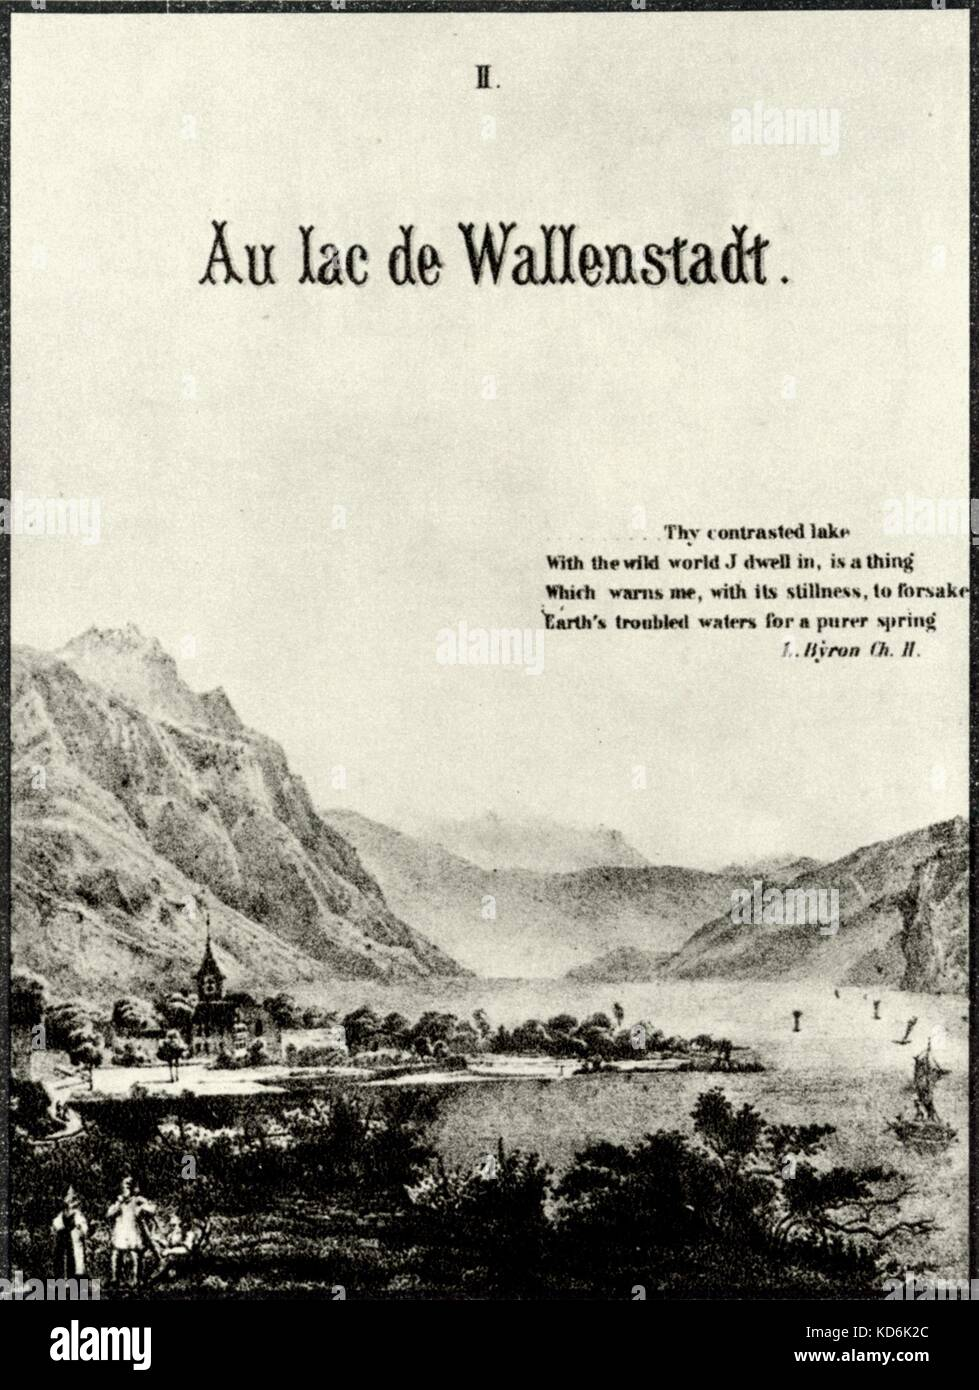 Book II ('Au lac de Wallenstadt') from Franz Liszt's collection of piano pieces 'Années de - Stock Image